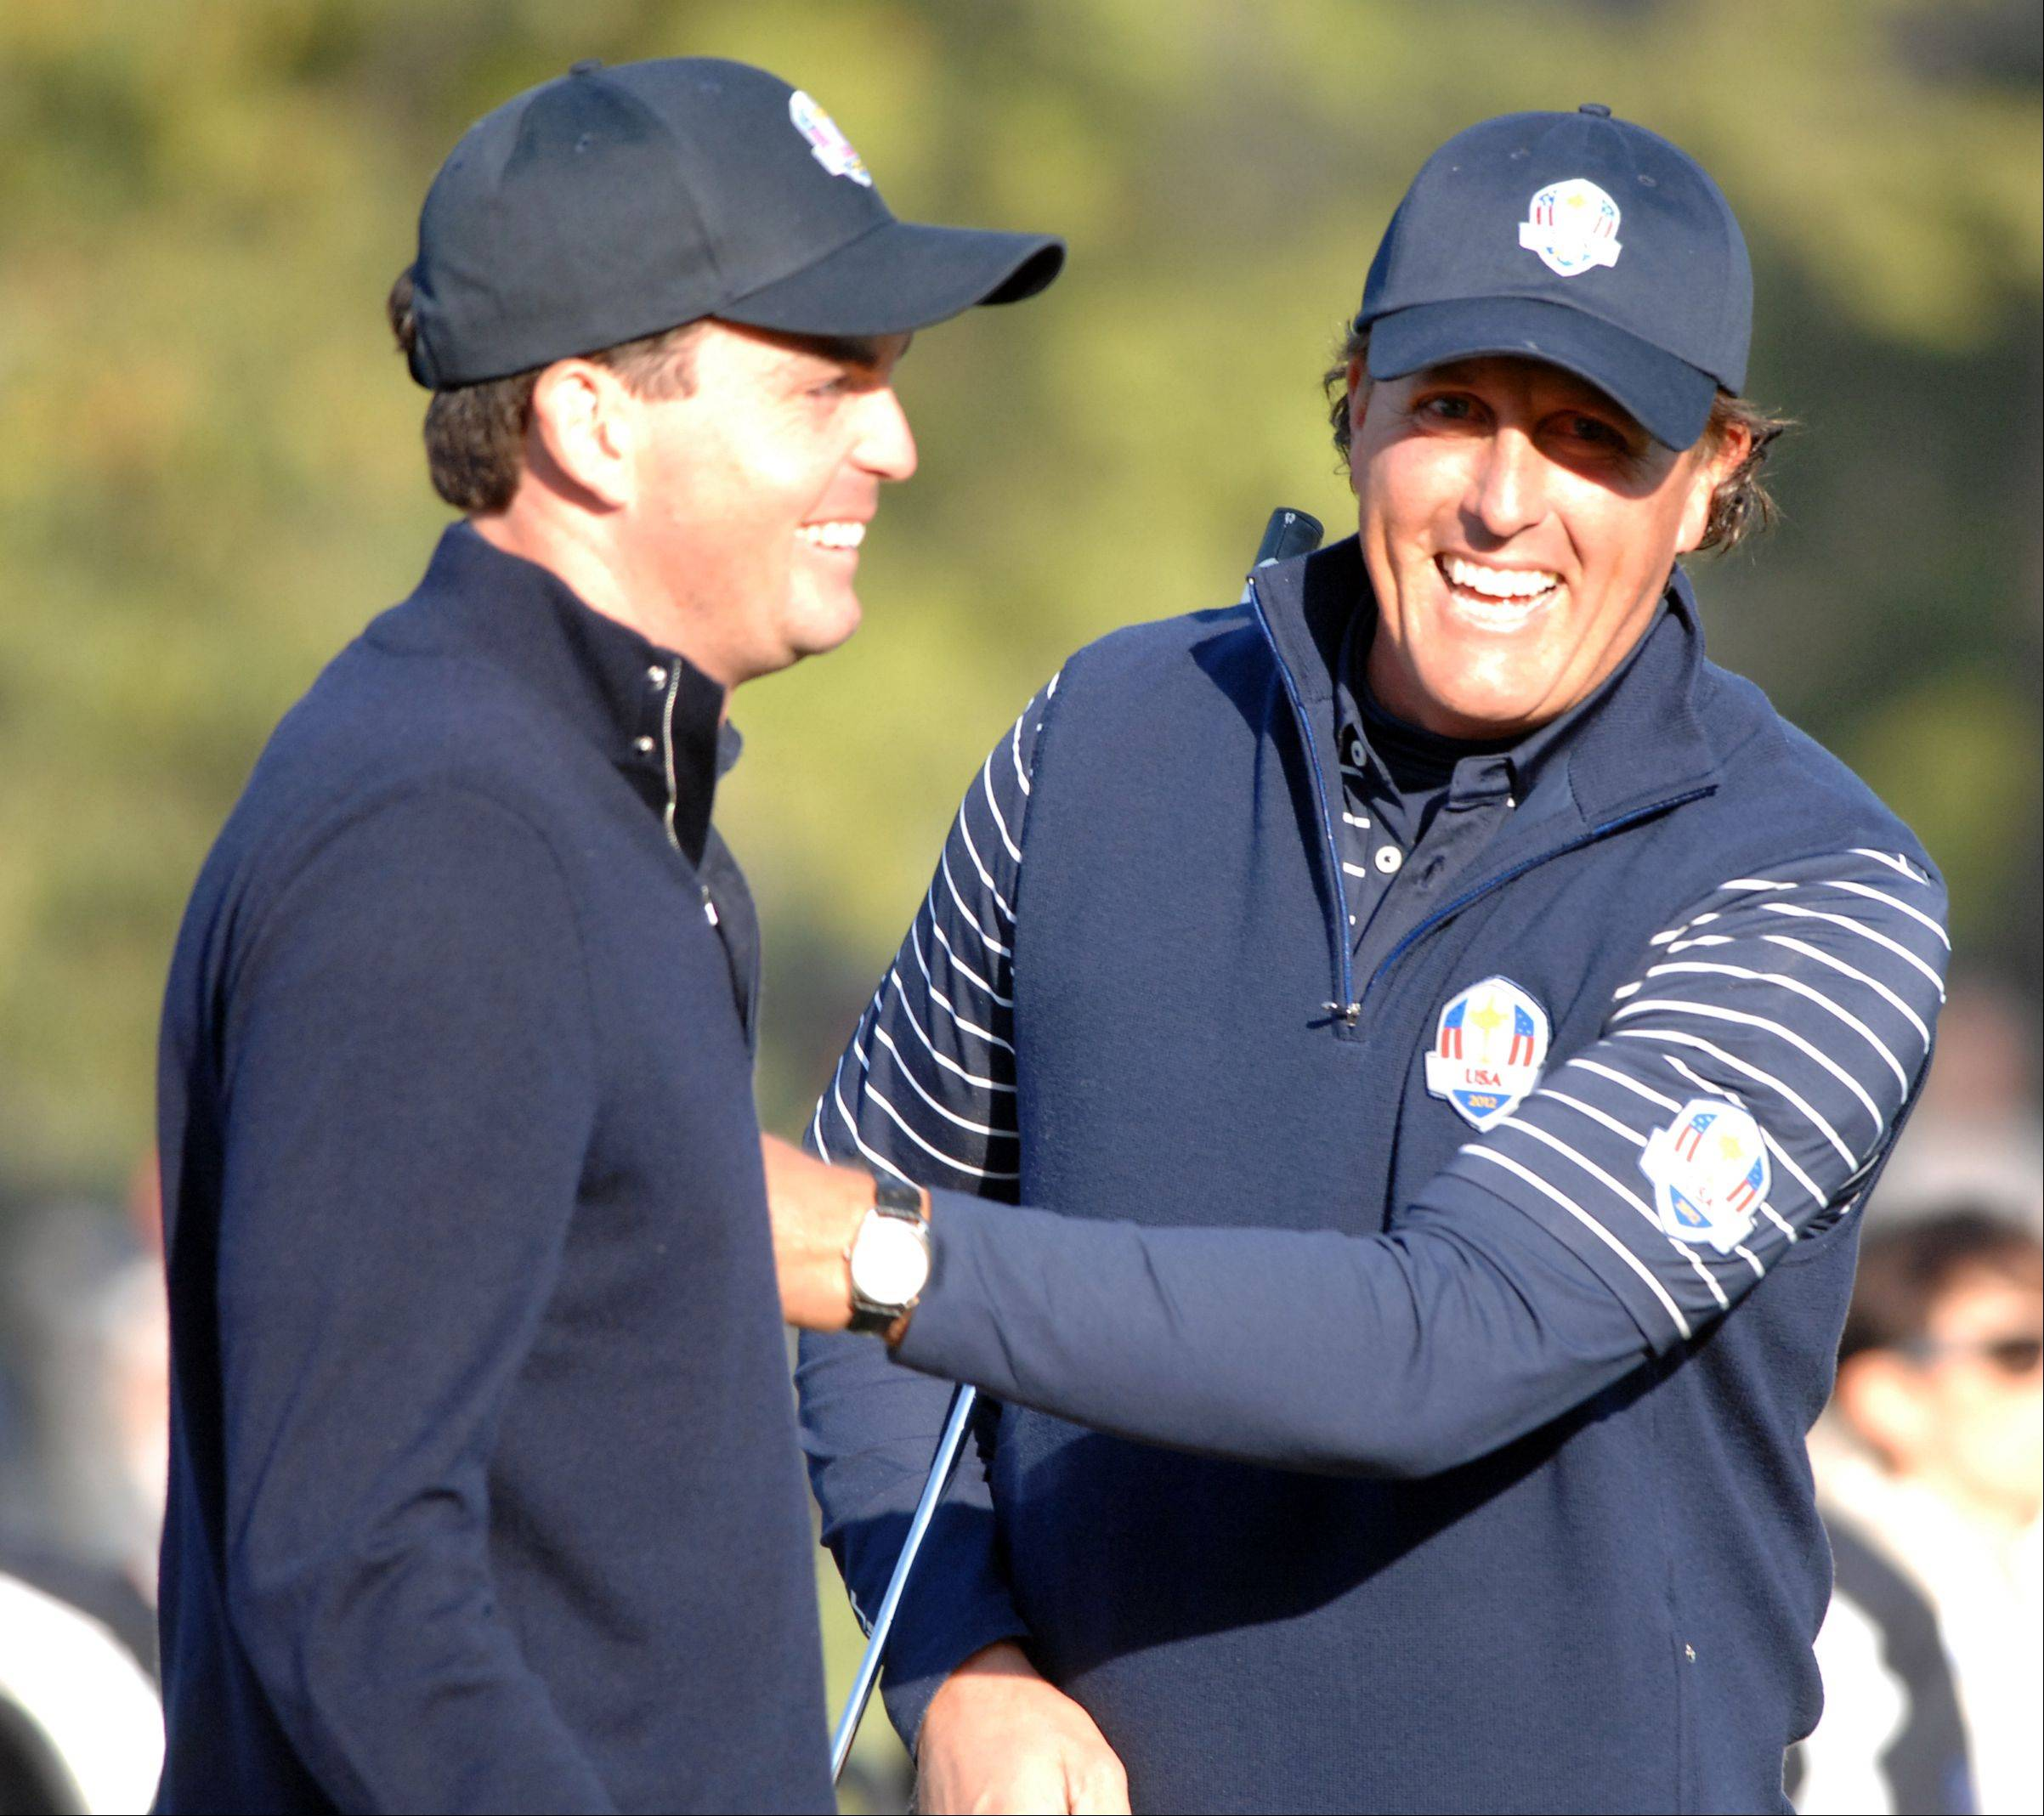 Phil Mickelson and Keegan Bradley celebrate after winning the 4th hole Saturday morning during day 2 of the 2012 Ryder Cup at Medinah Country Club.